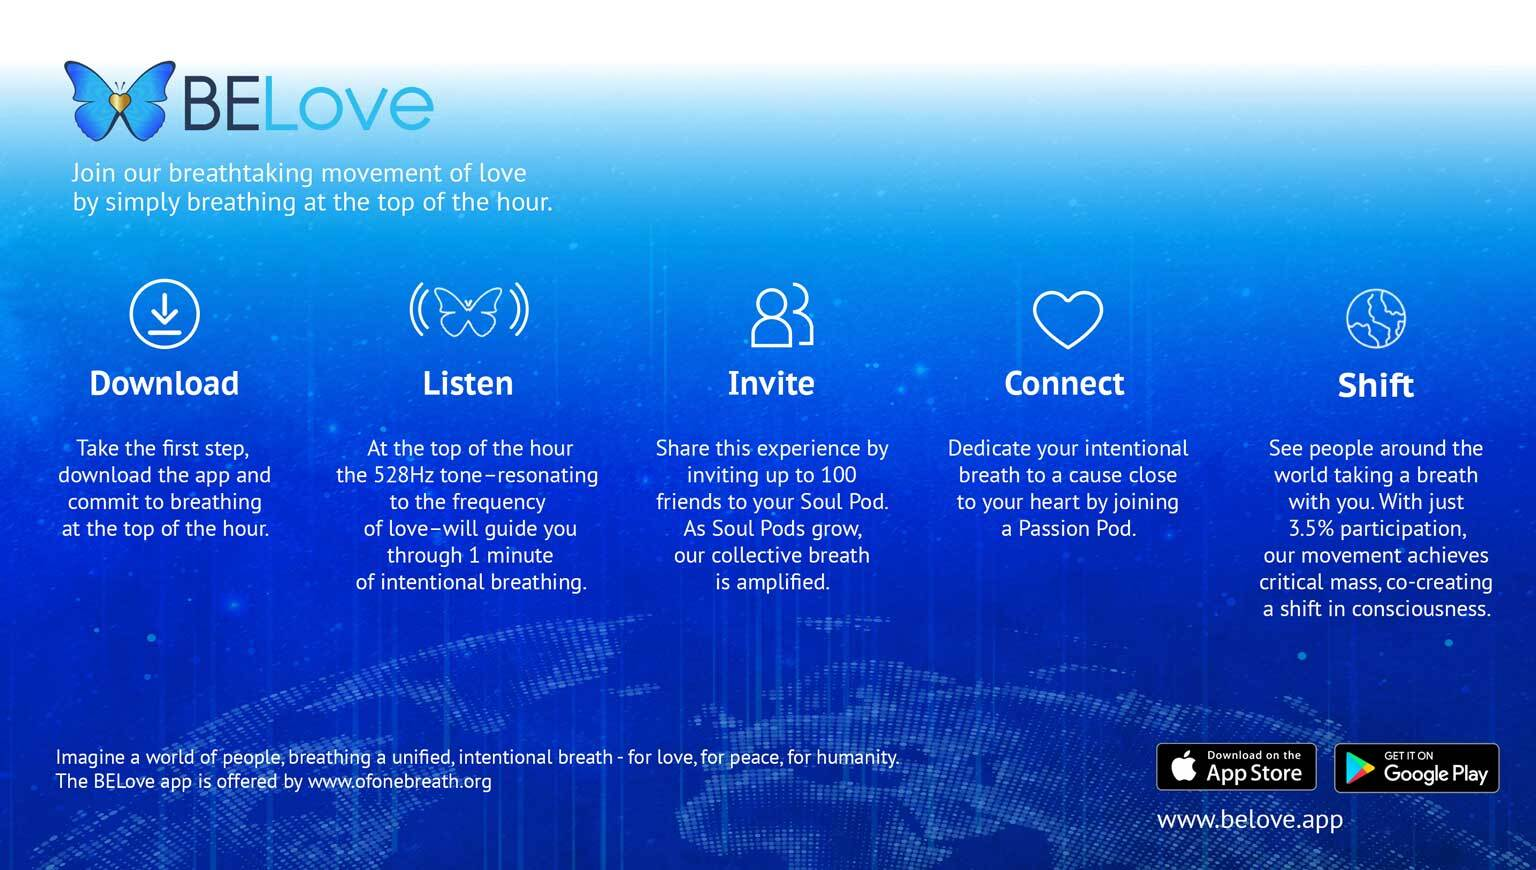 BELOVE APP DELIVERS A CONNECTED COMMUNITY EXPERIENCE THROUGH THE SIMPLE ACT OF BREATH